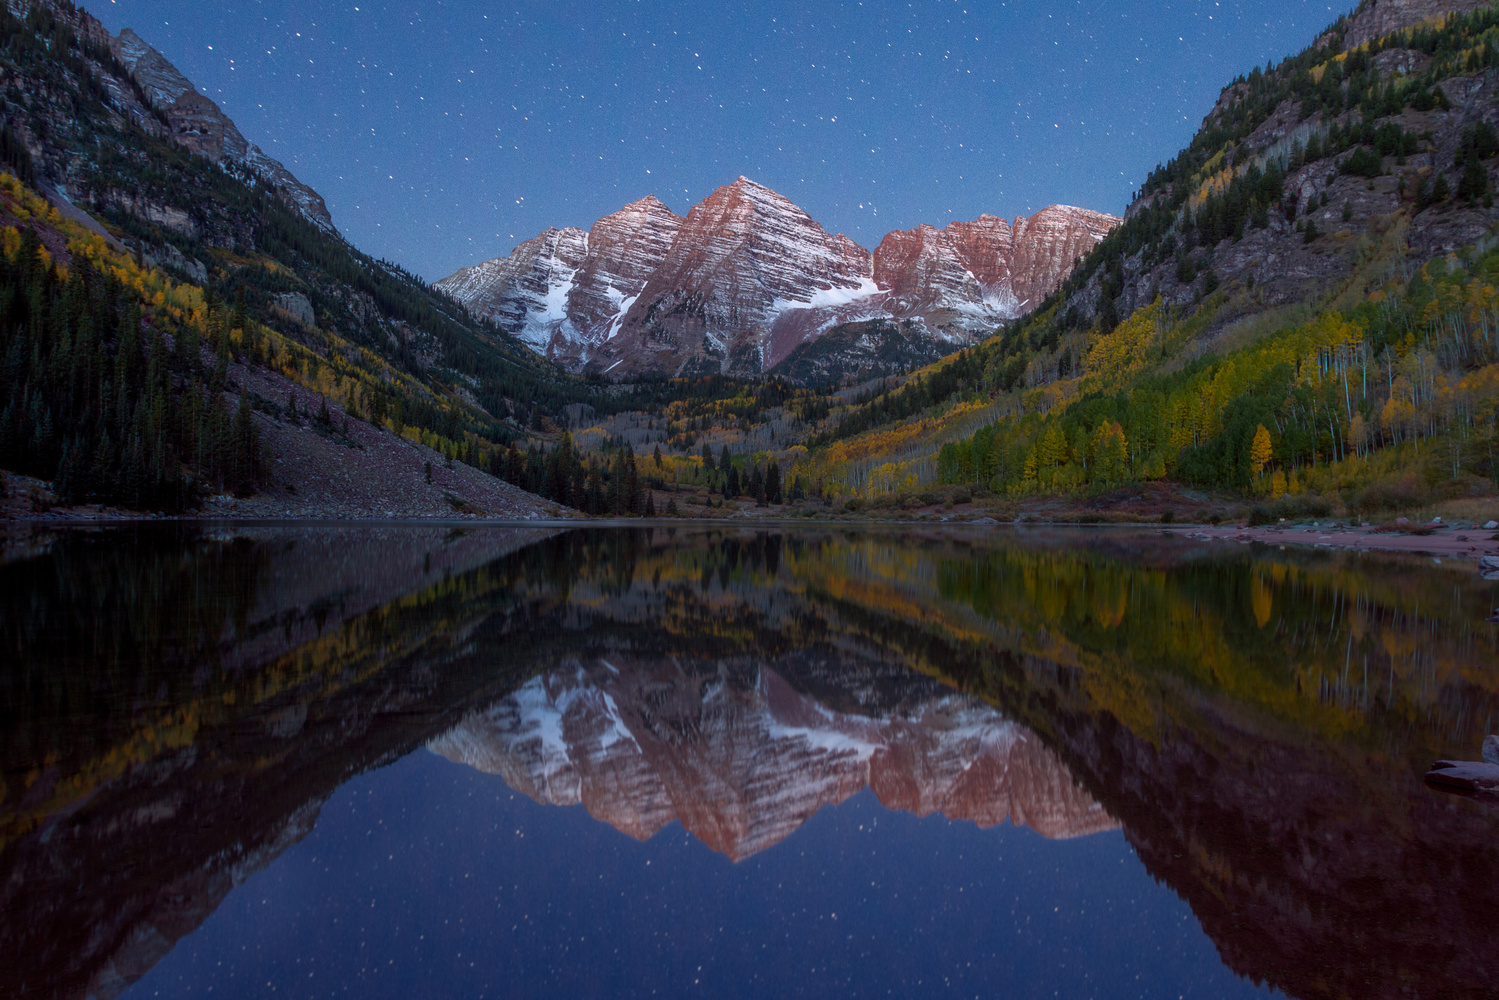 Maroon Bells Under the Stars by Nick Souvall